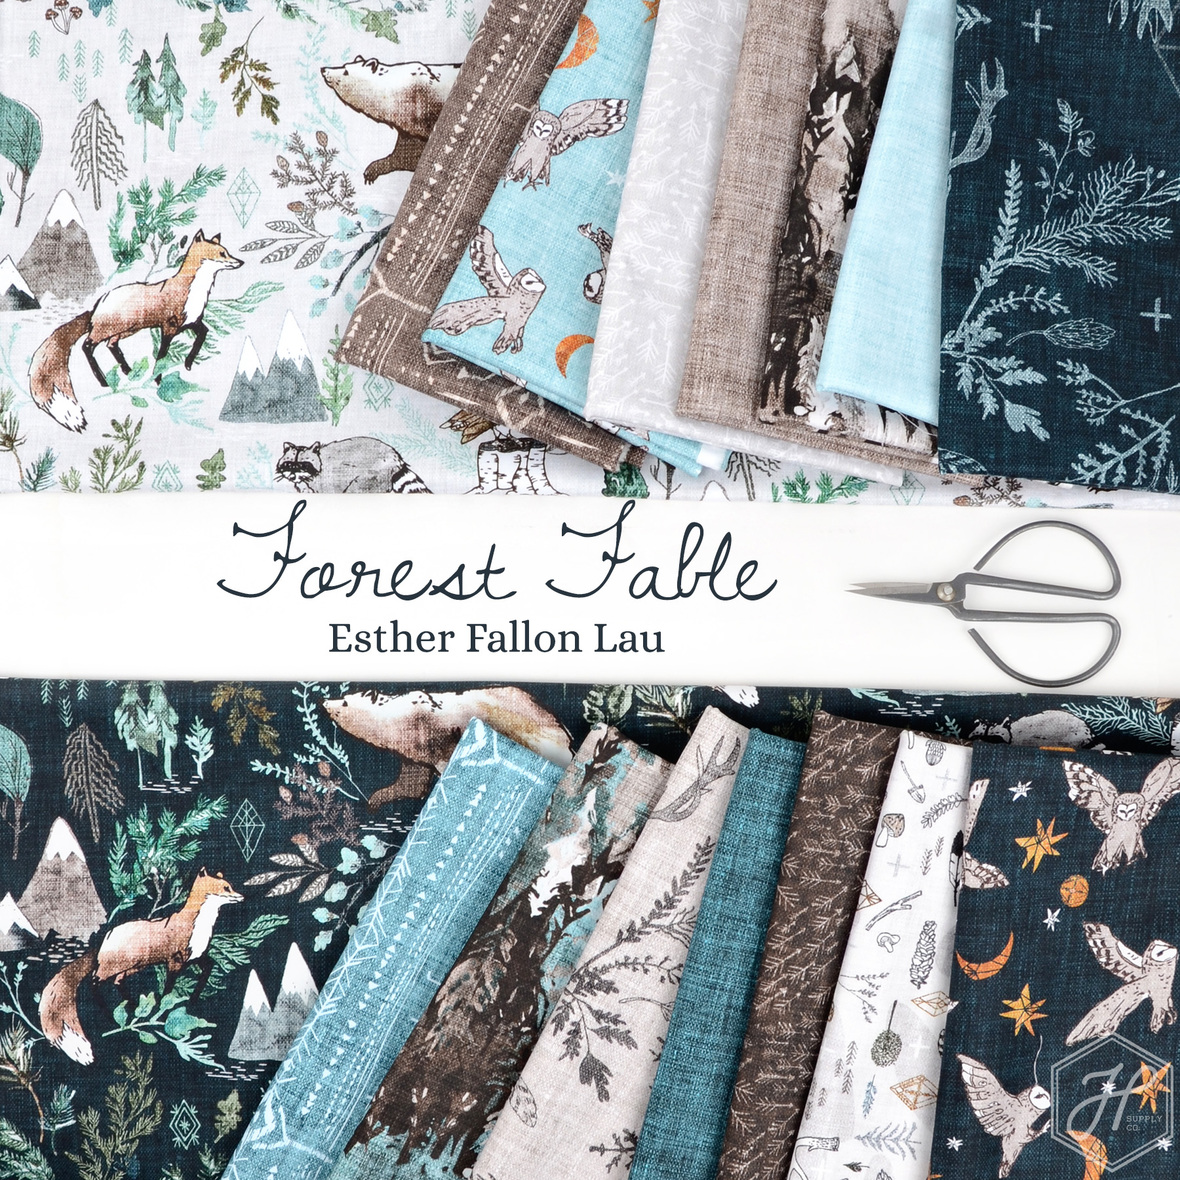 Forest Fable Fabric Esther Fallon Lau for Figo at Hawthorne Supply Co